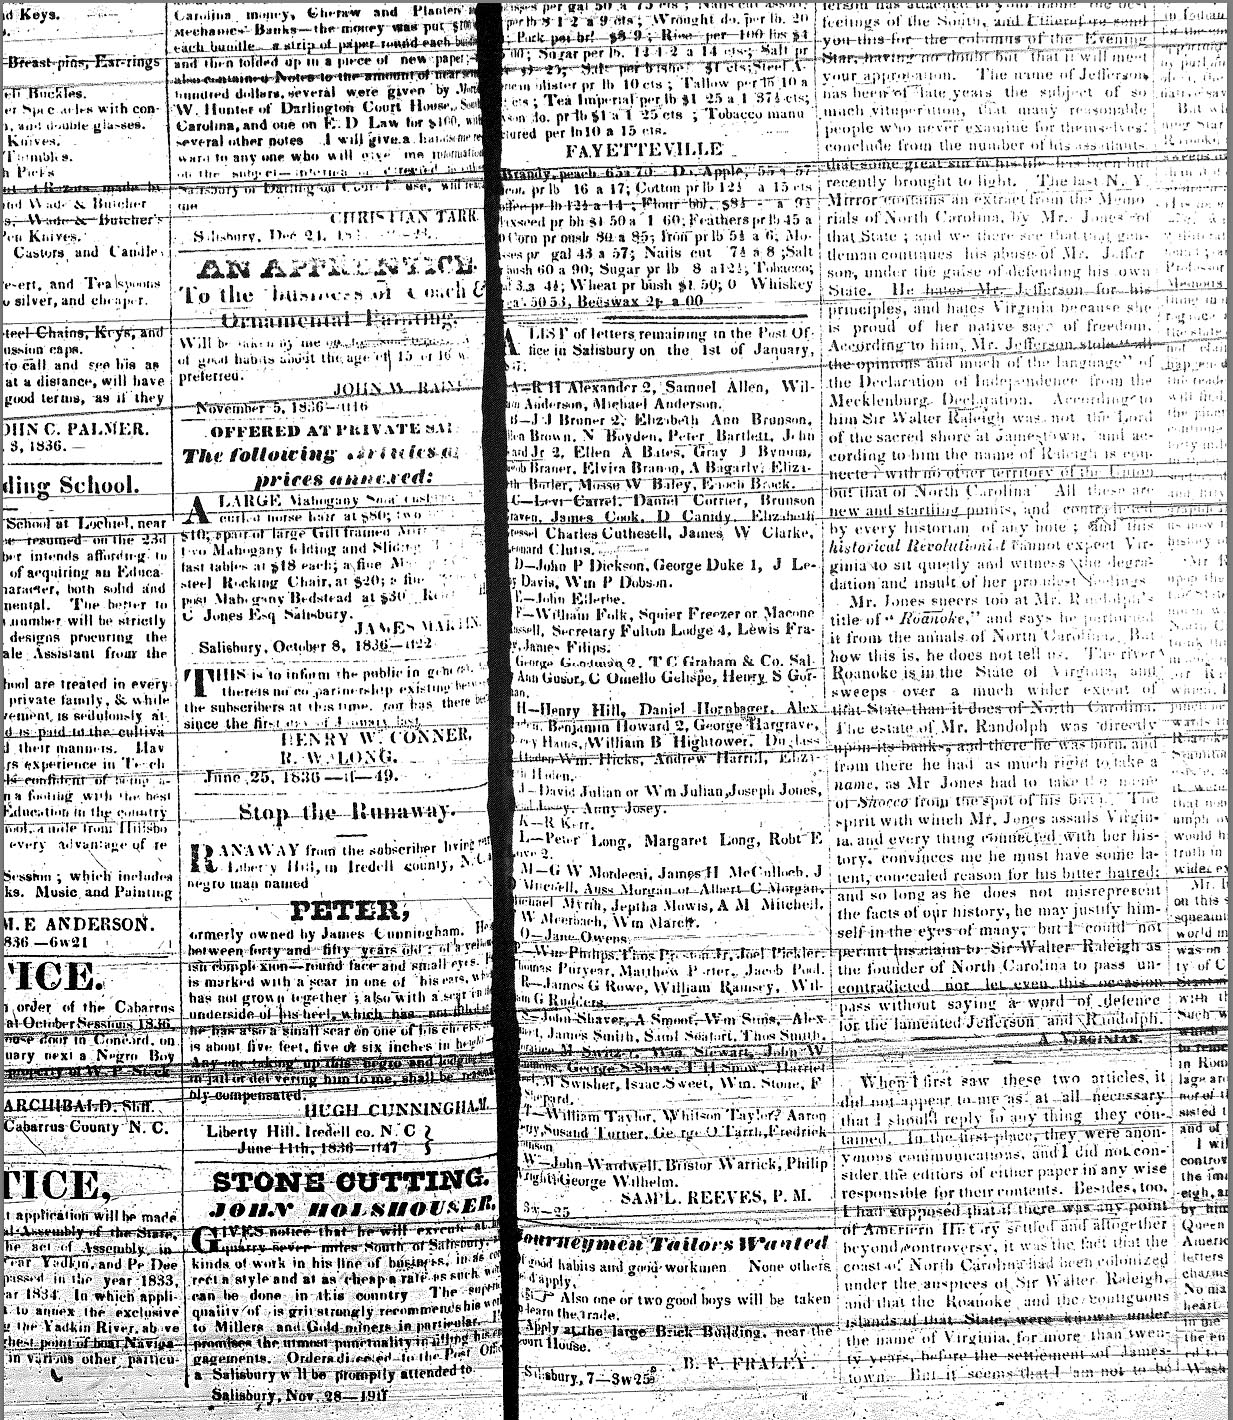 Carolina Watchman ads: January 7, 1837